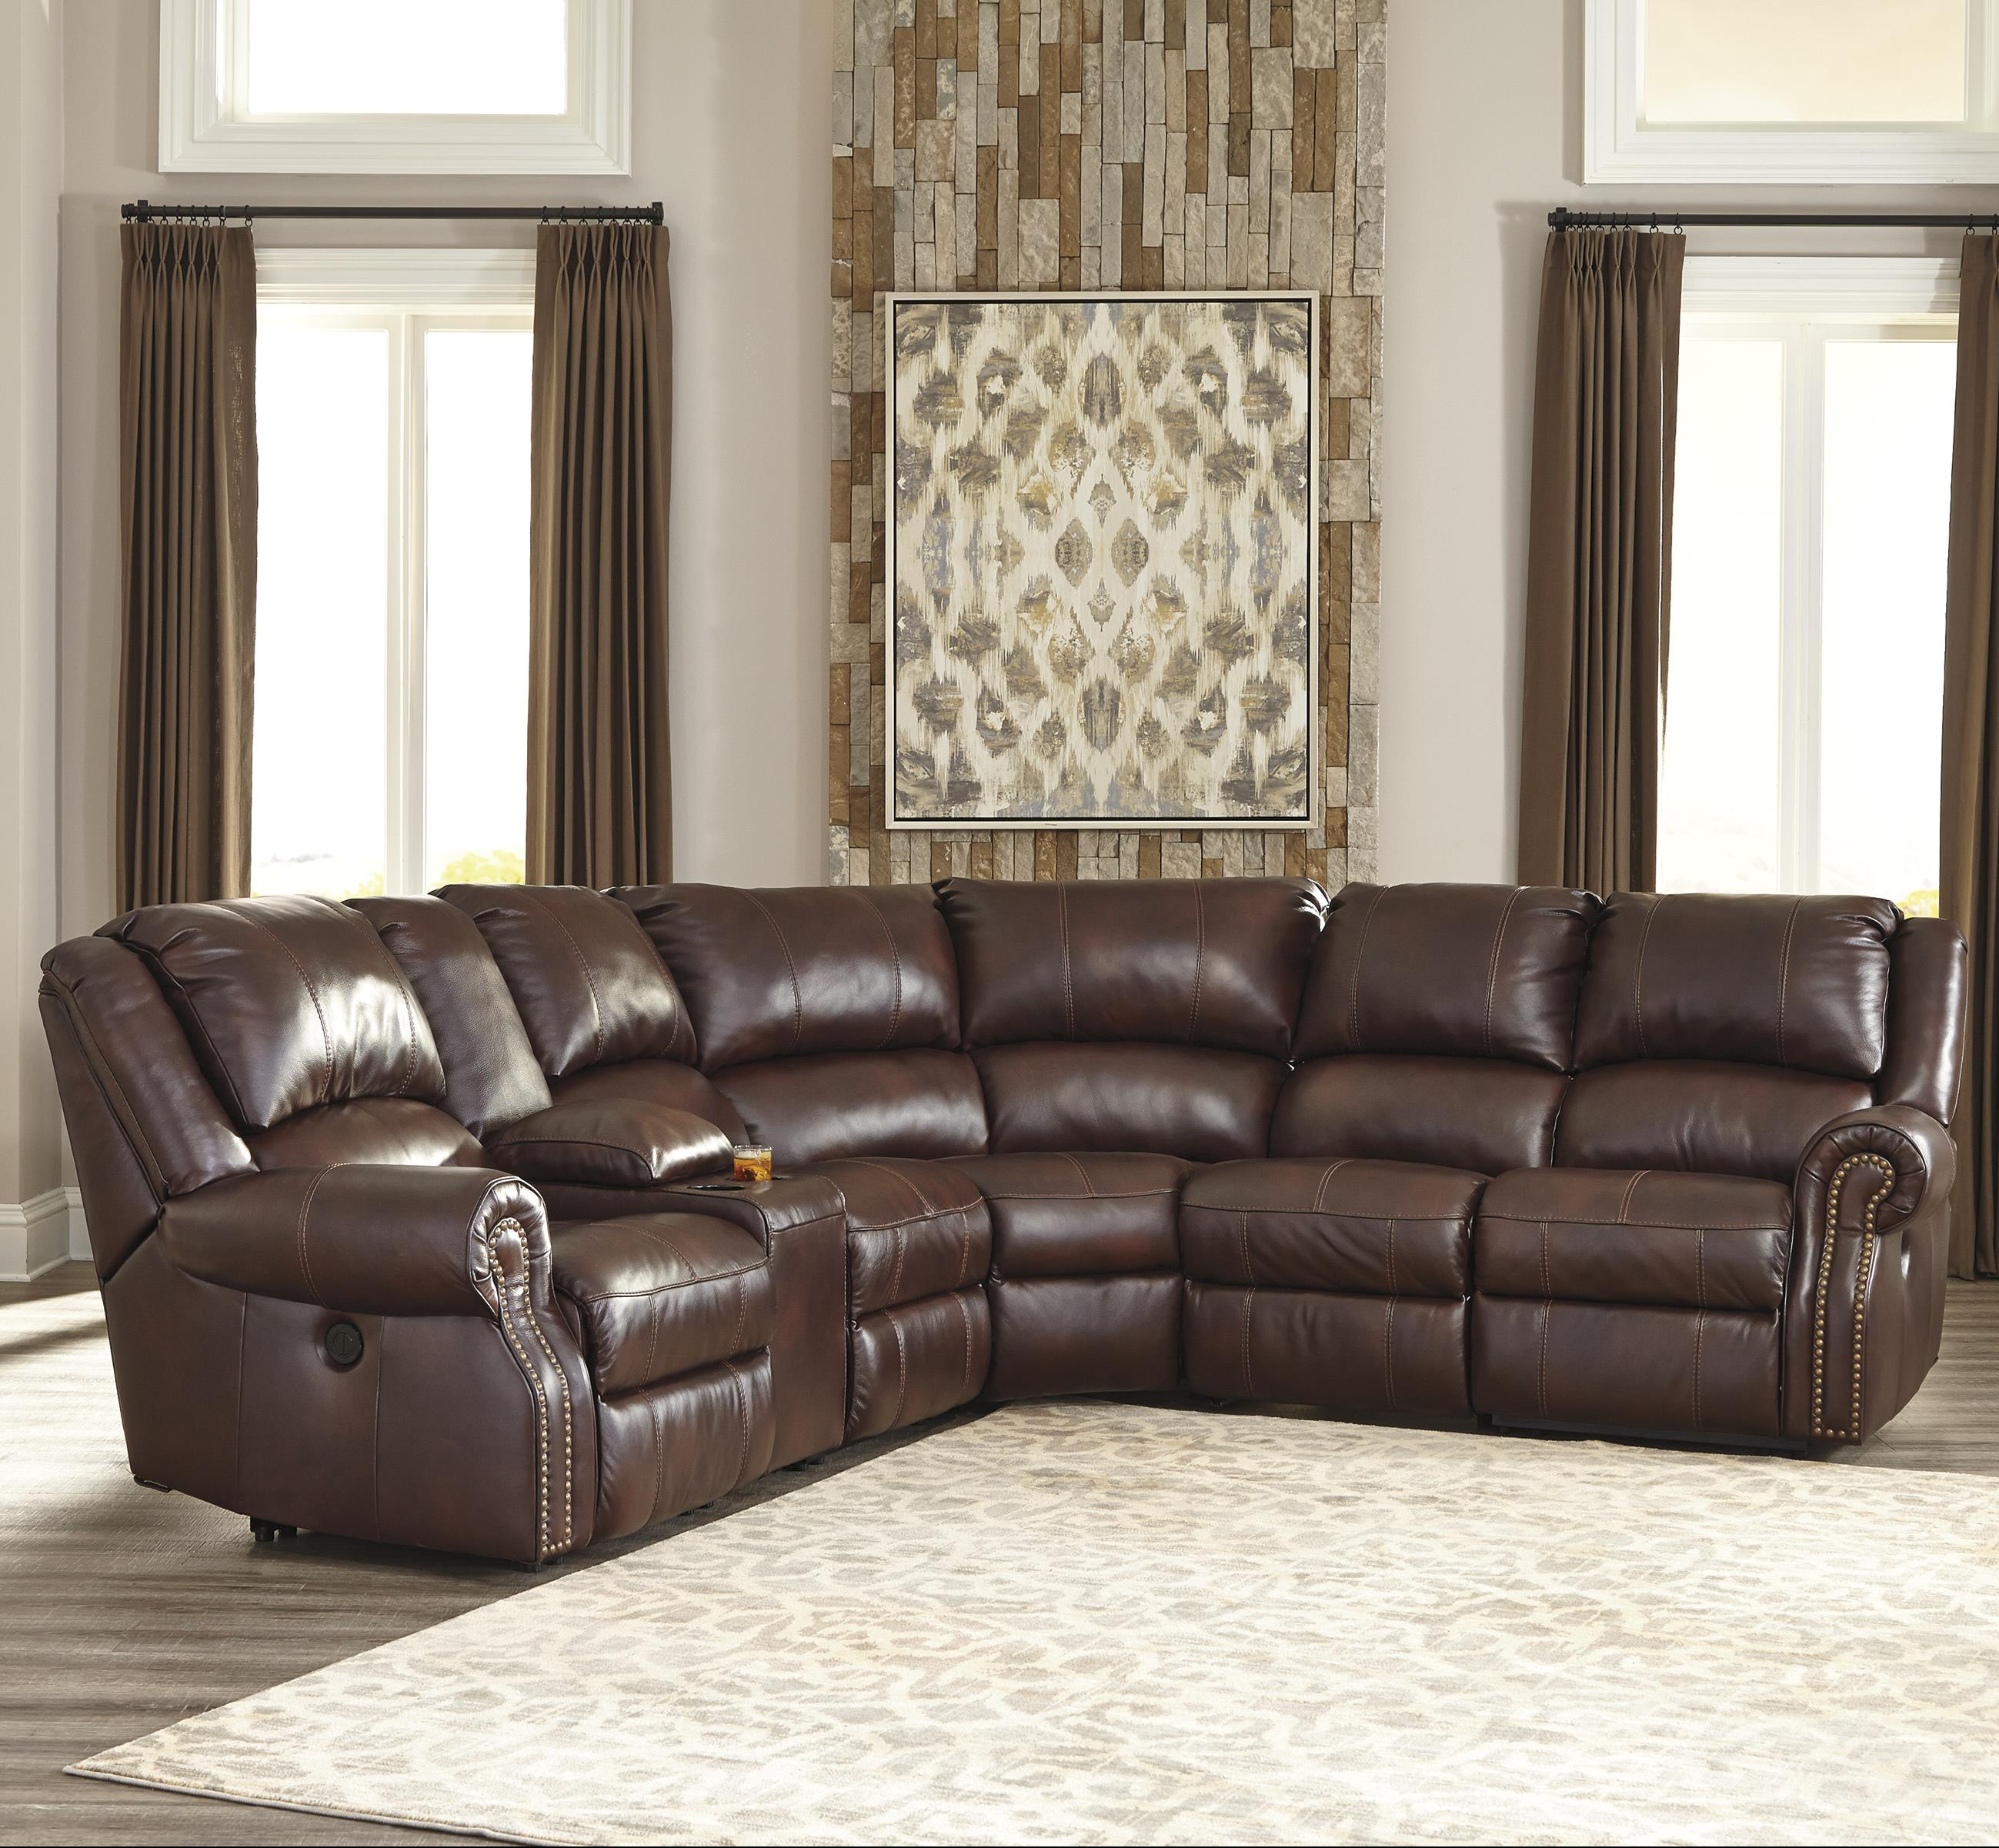 6 Piece Power Reclining Sectional with Console & 2 Armless